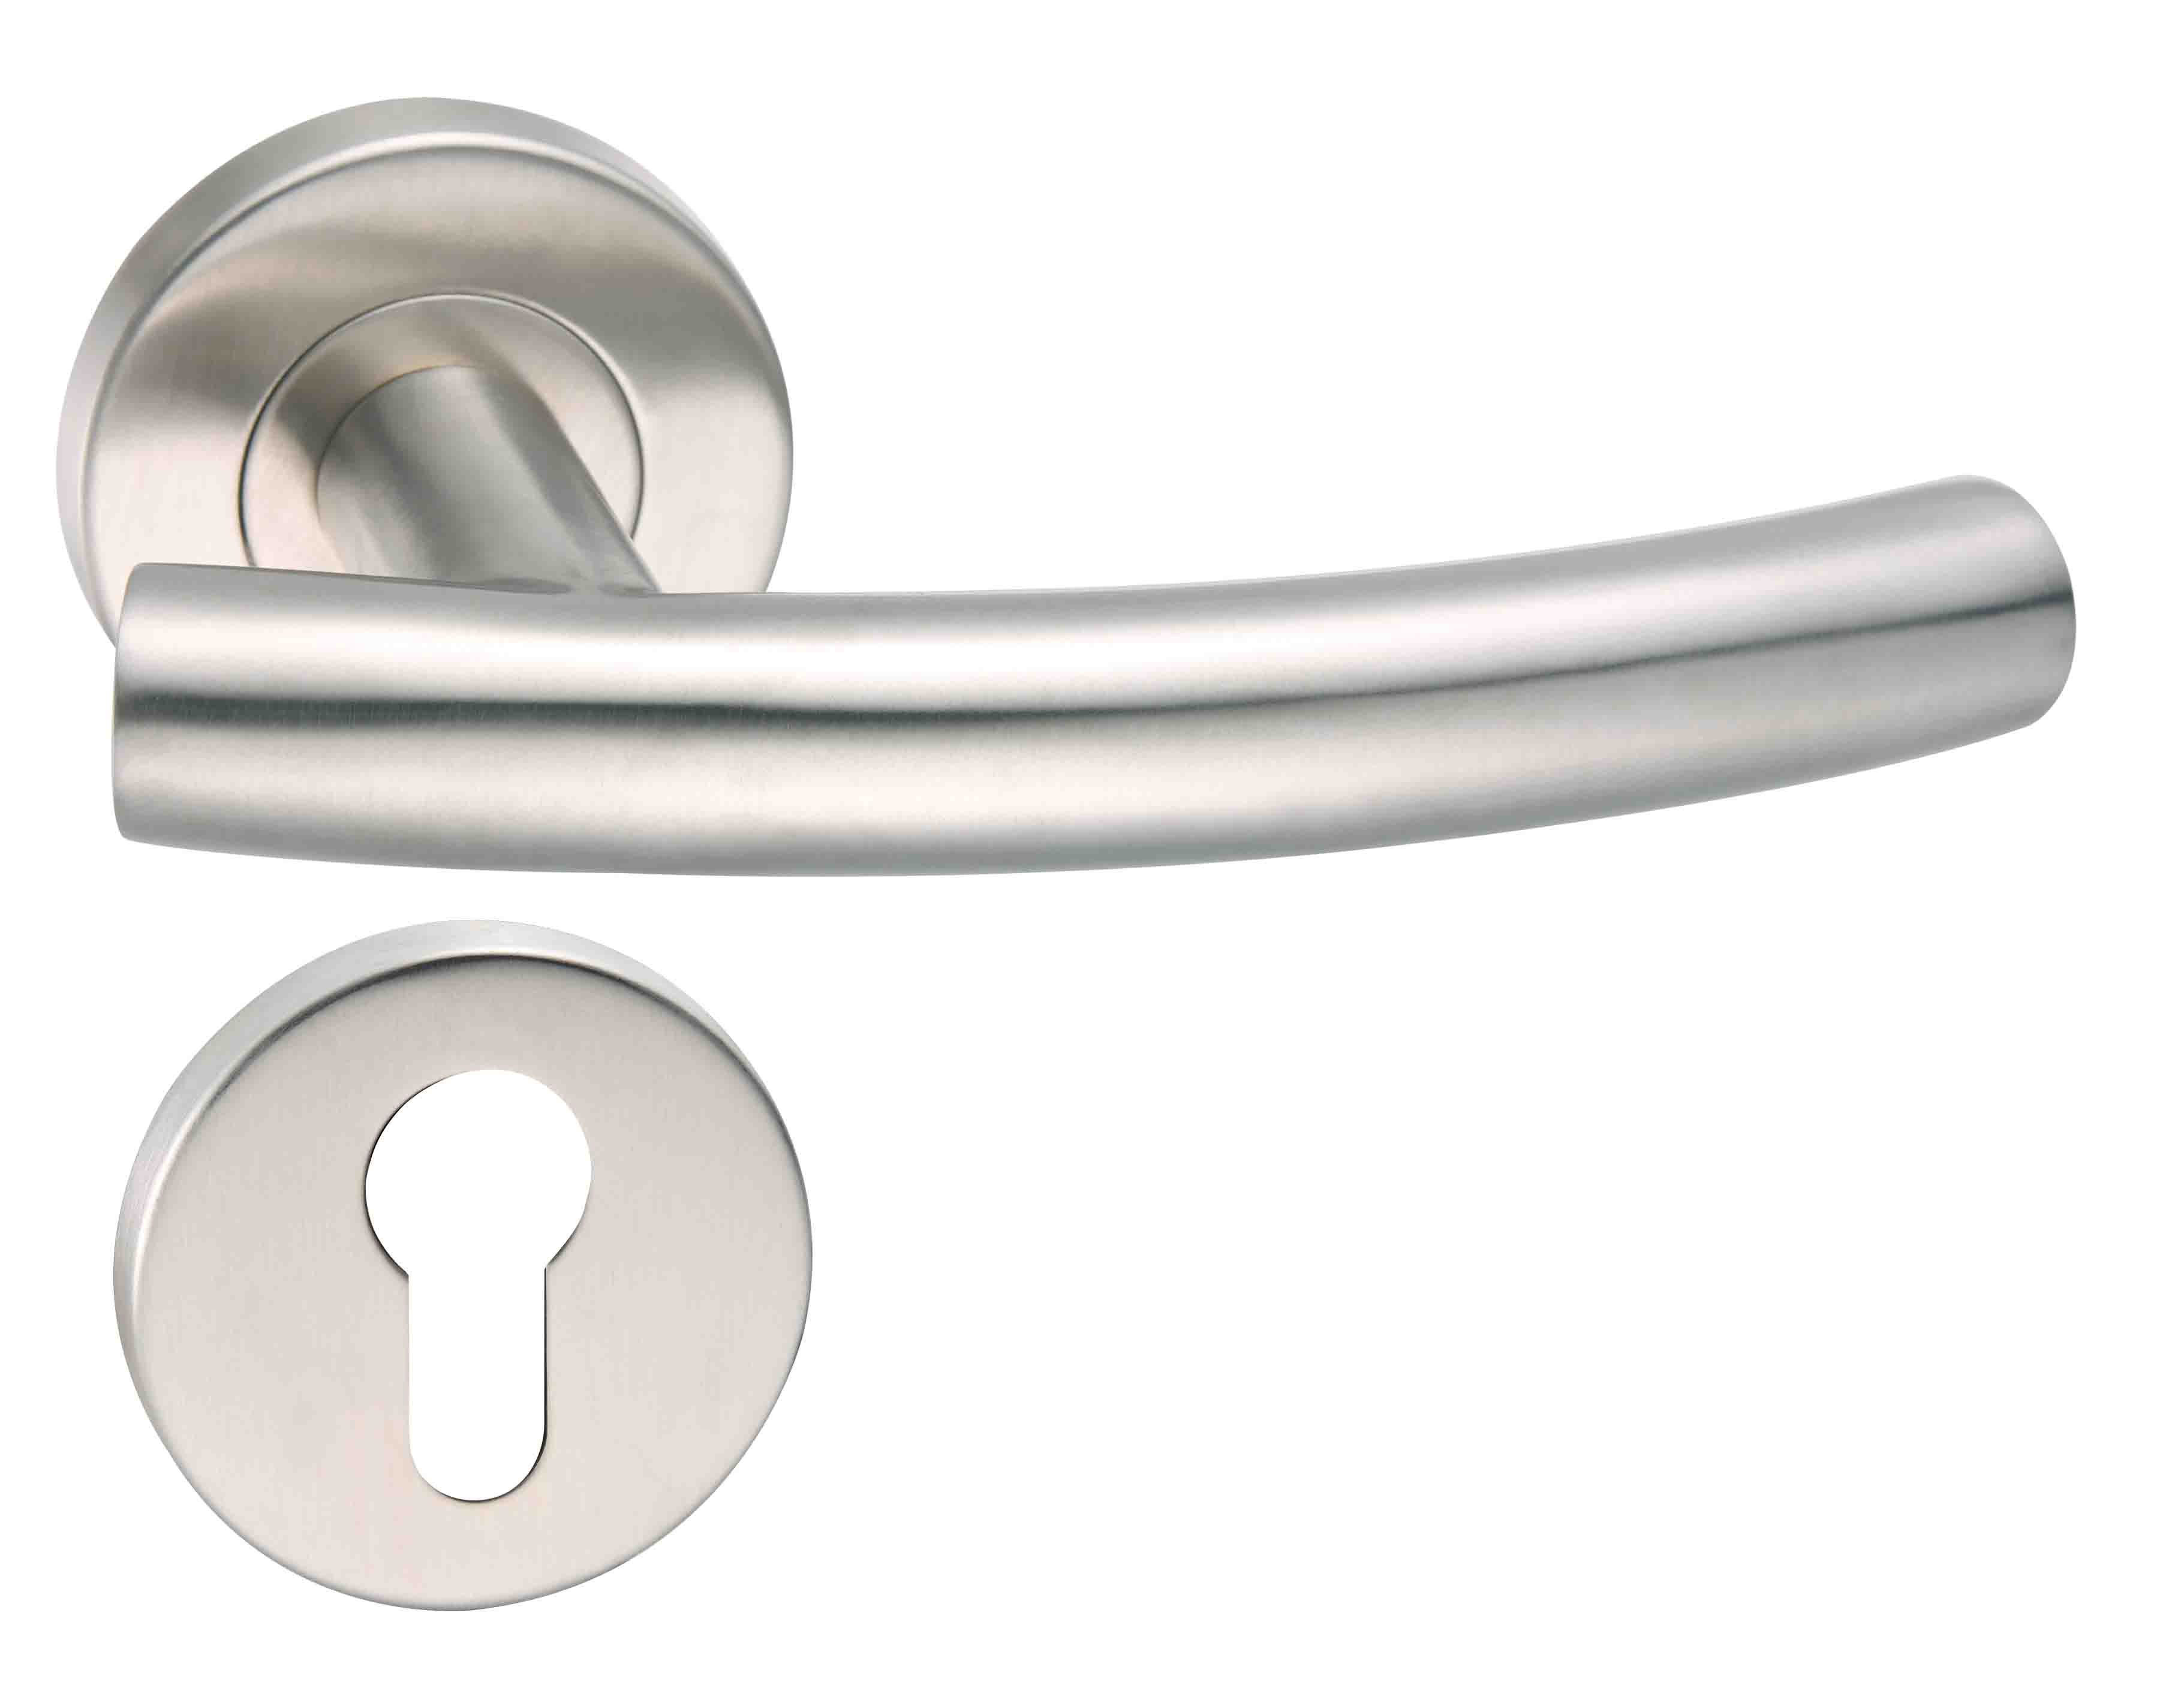 kit shipping overstock style sliding finish door today free smoke distressed farm latch product garden hardware doors with home